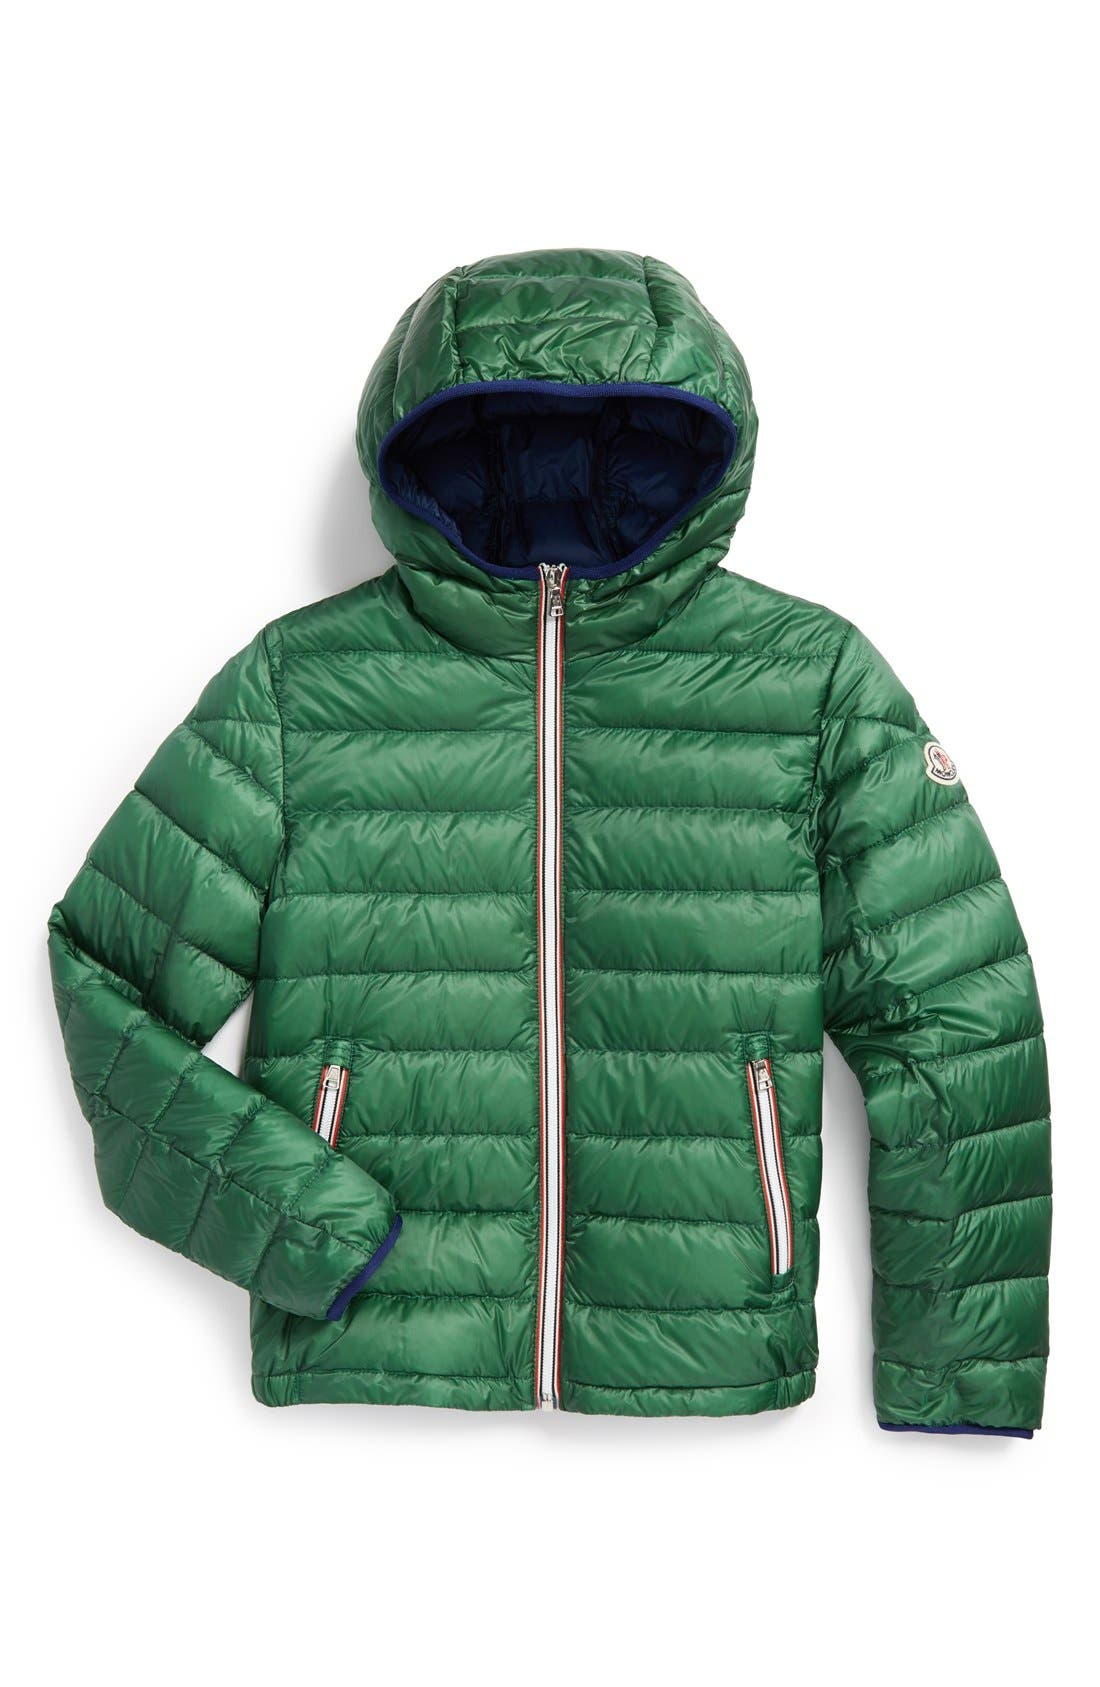 'Athenes' Hooded Down Jacket,                             Alternate thumbnail 2, color,                             307